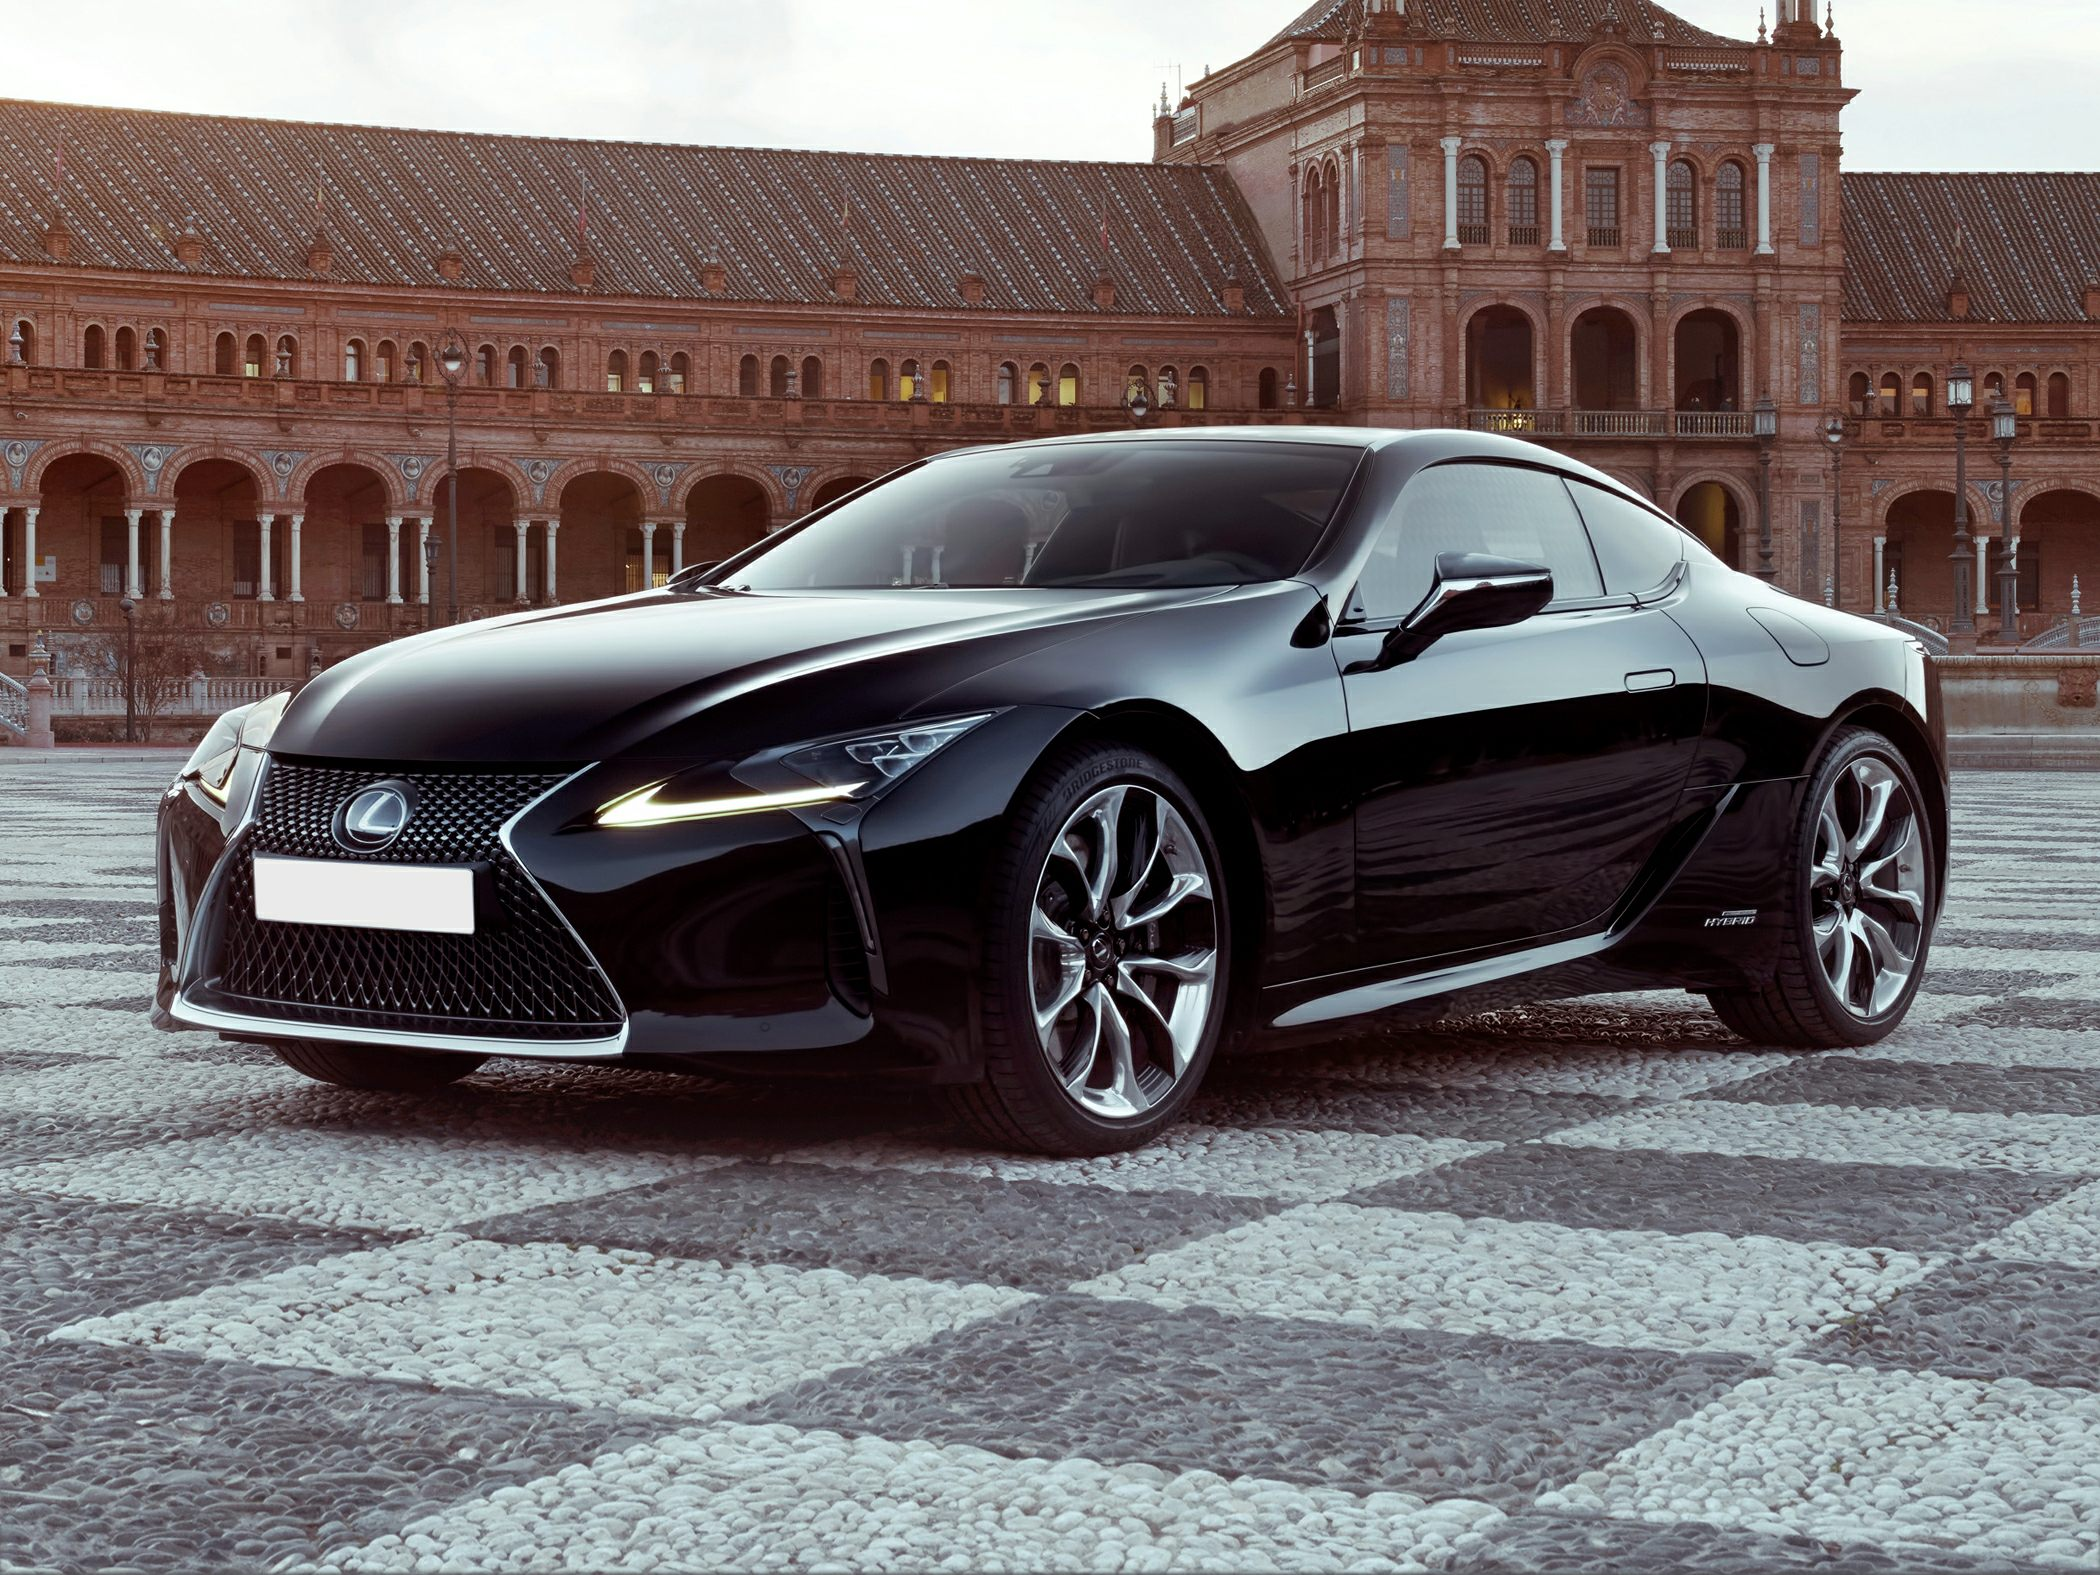 2018 lexus lc 500h deals prices incentives leases overview carsdirect. Black Bedroom Furniture Sets. Home Design Ideas